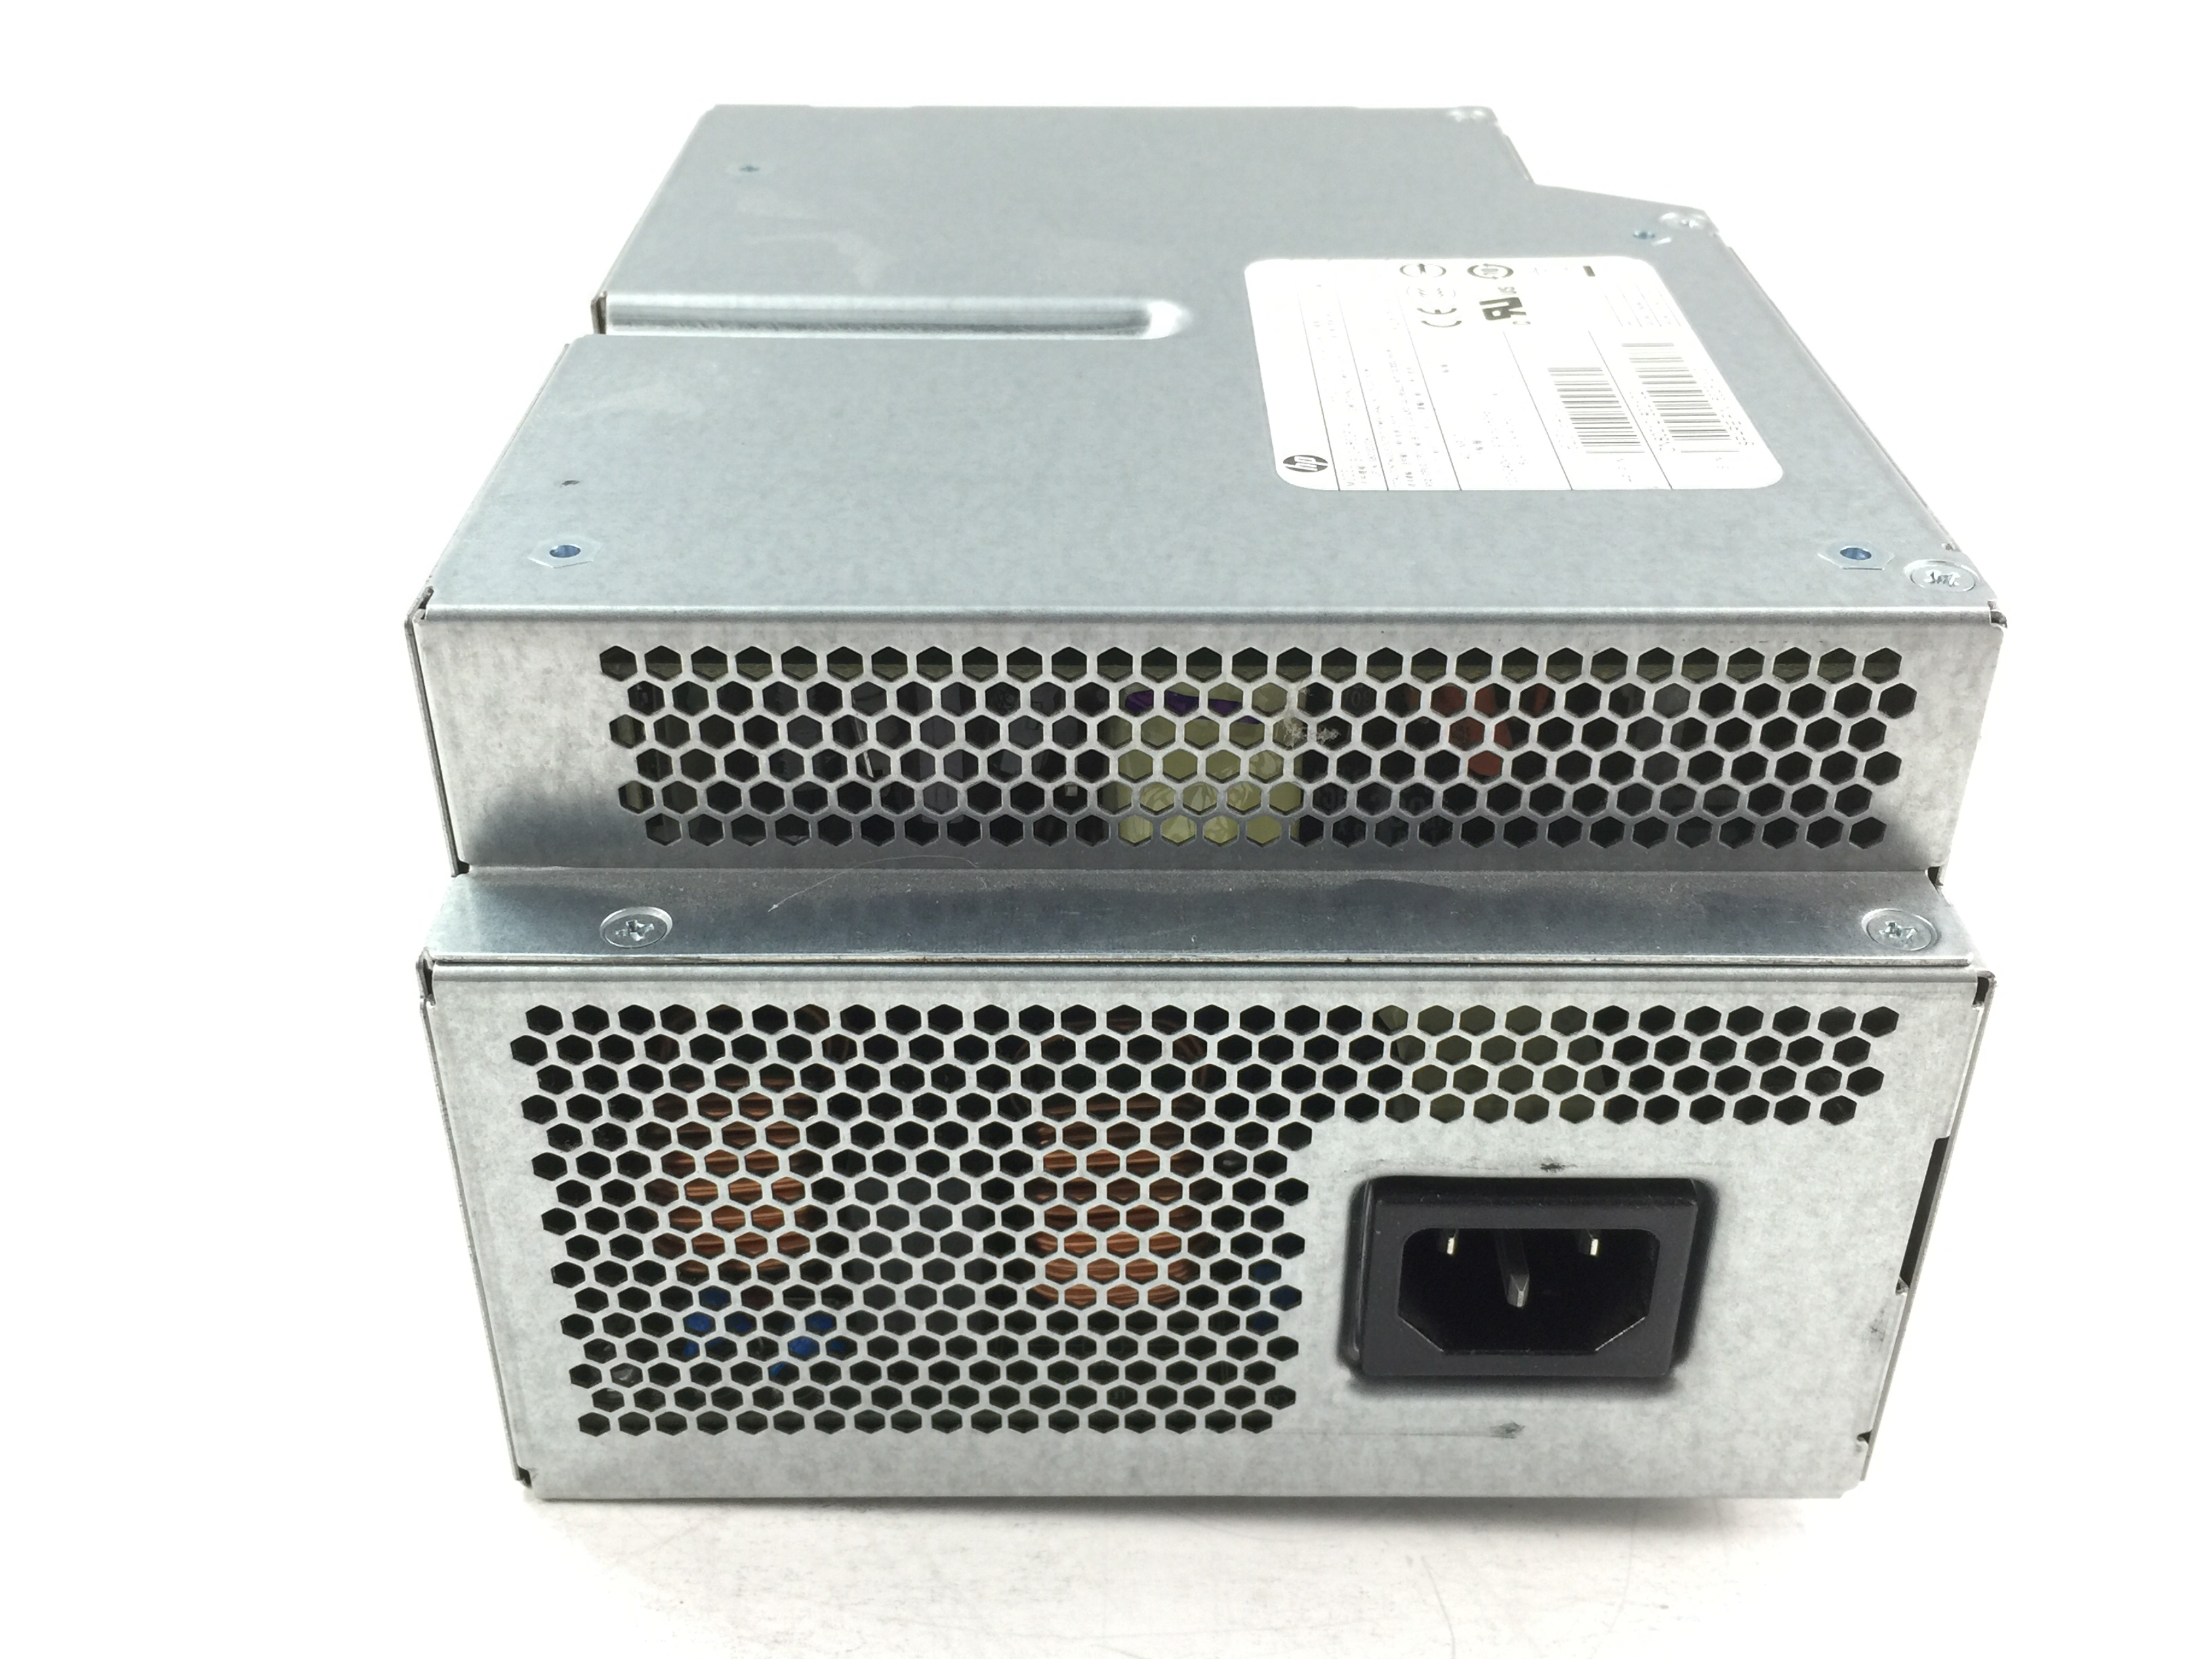 HP Z620 800 Watt WorkStation Power Supply (632912-001)